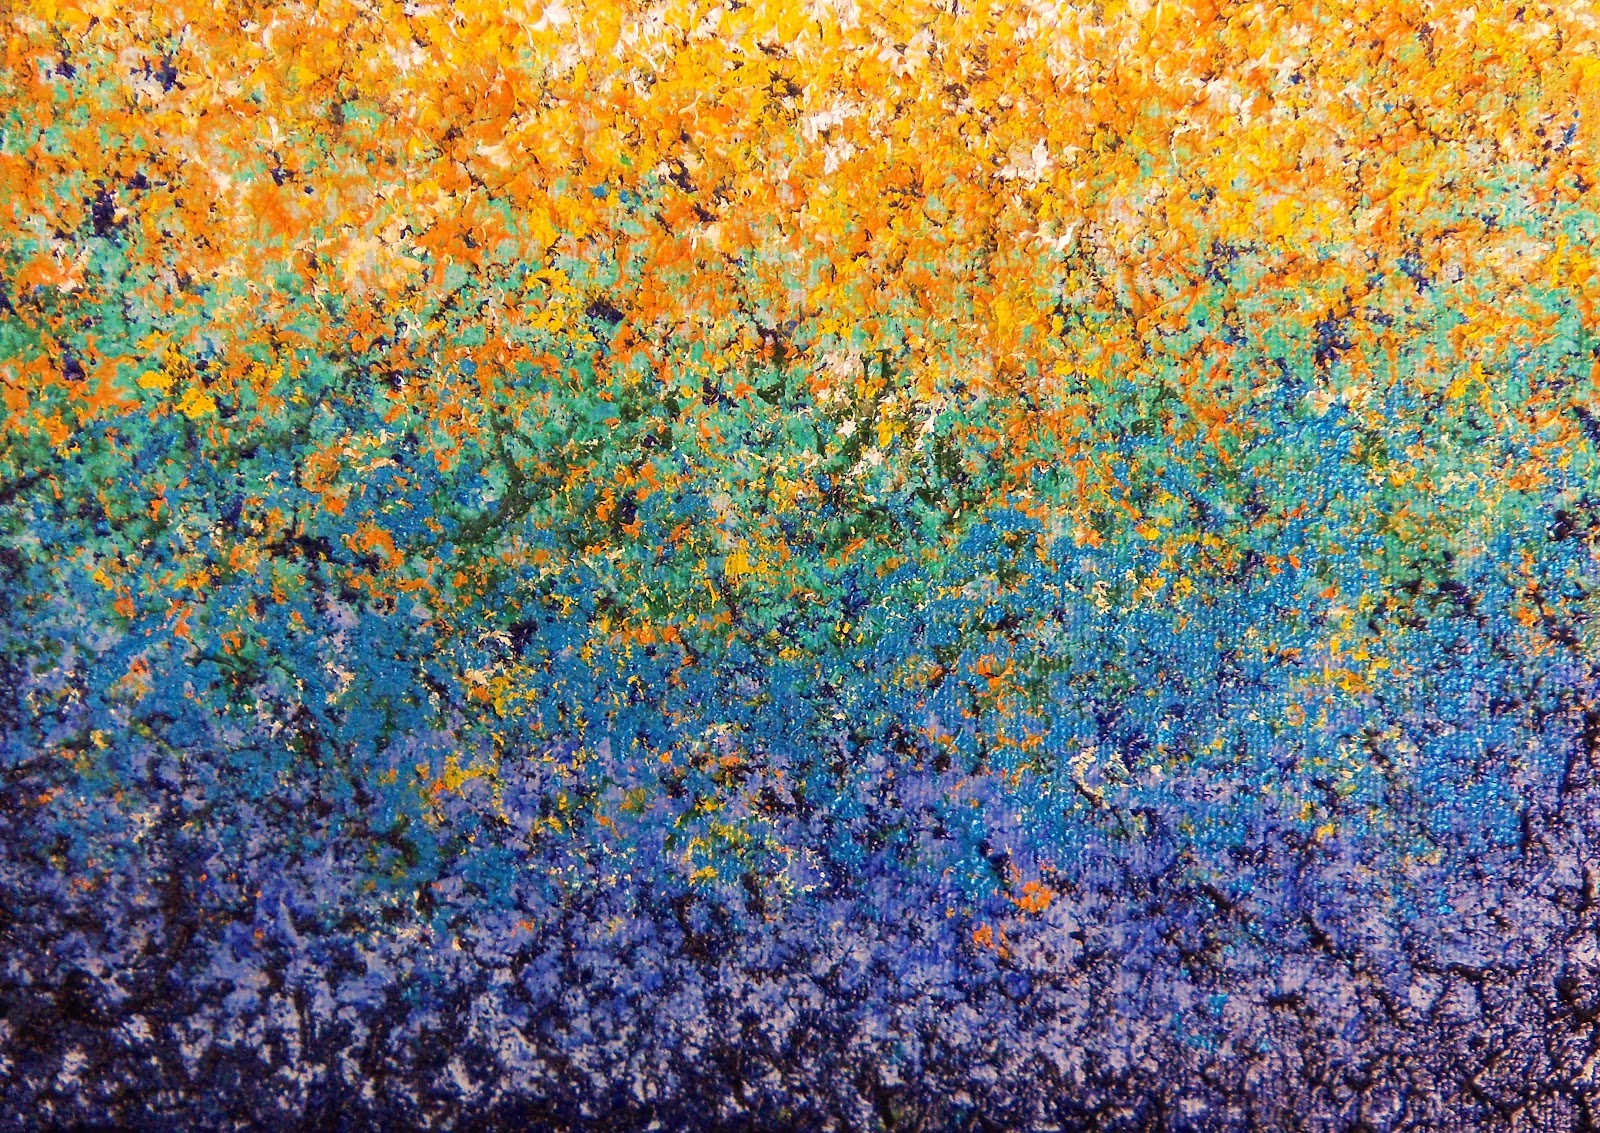 Impressionist Oil Painting, Abstract Garden Art Impasto Painting, Rainbow  Art, Colorful Painting, 5 X 7